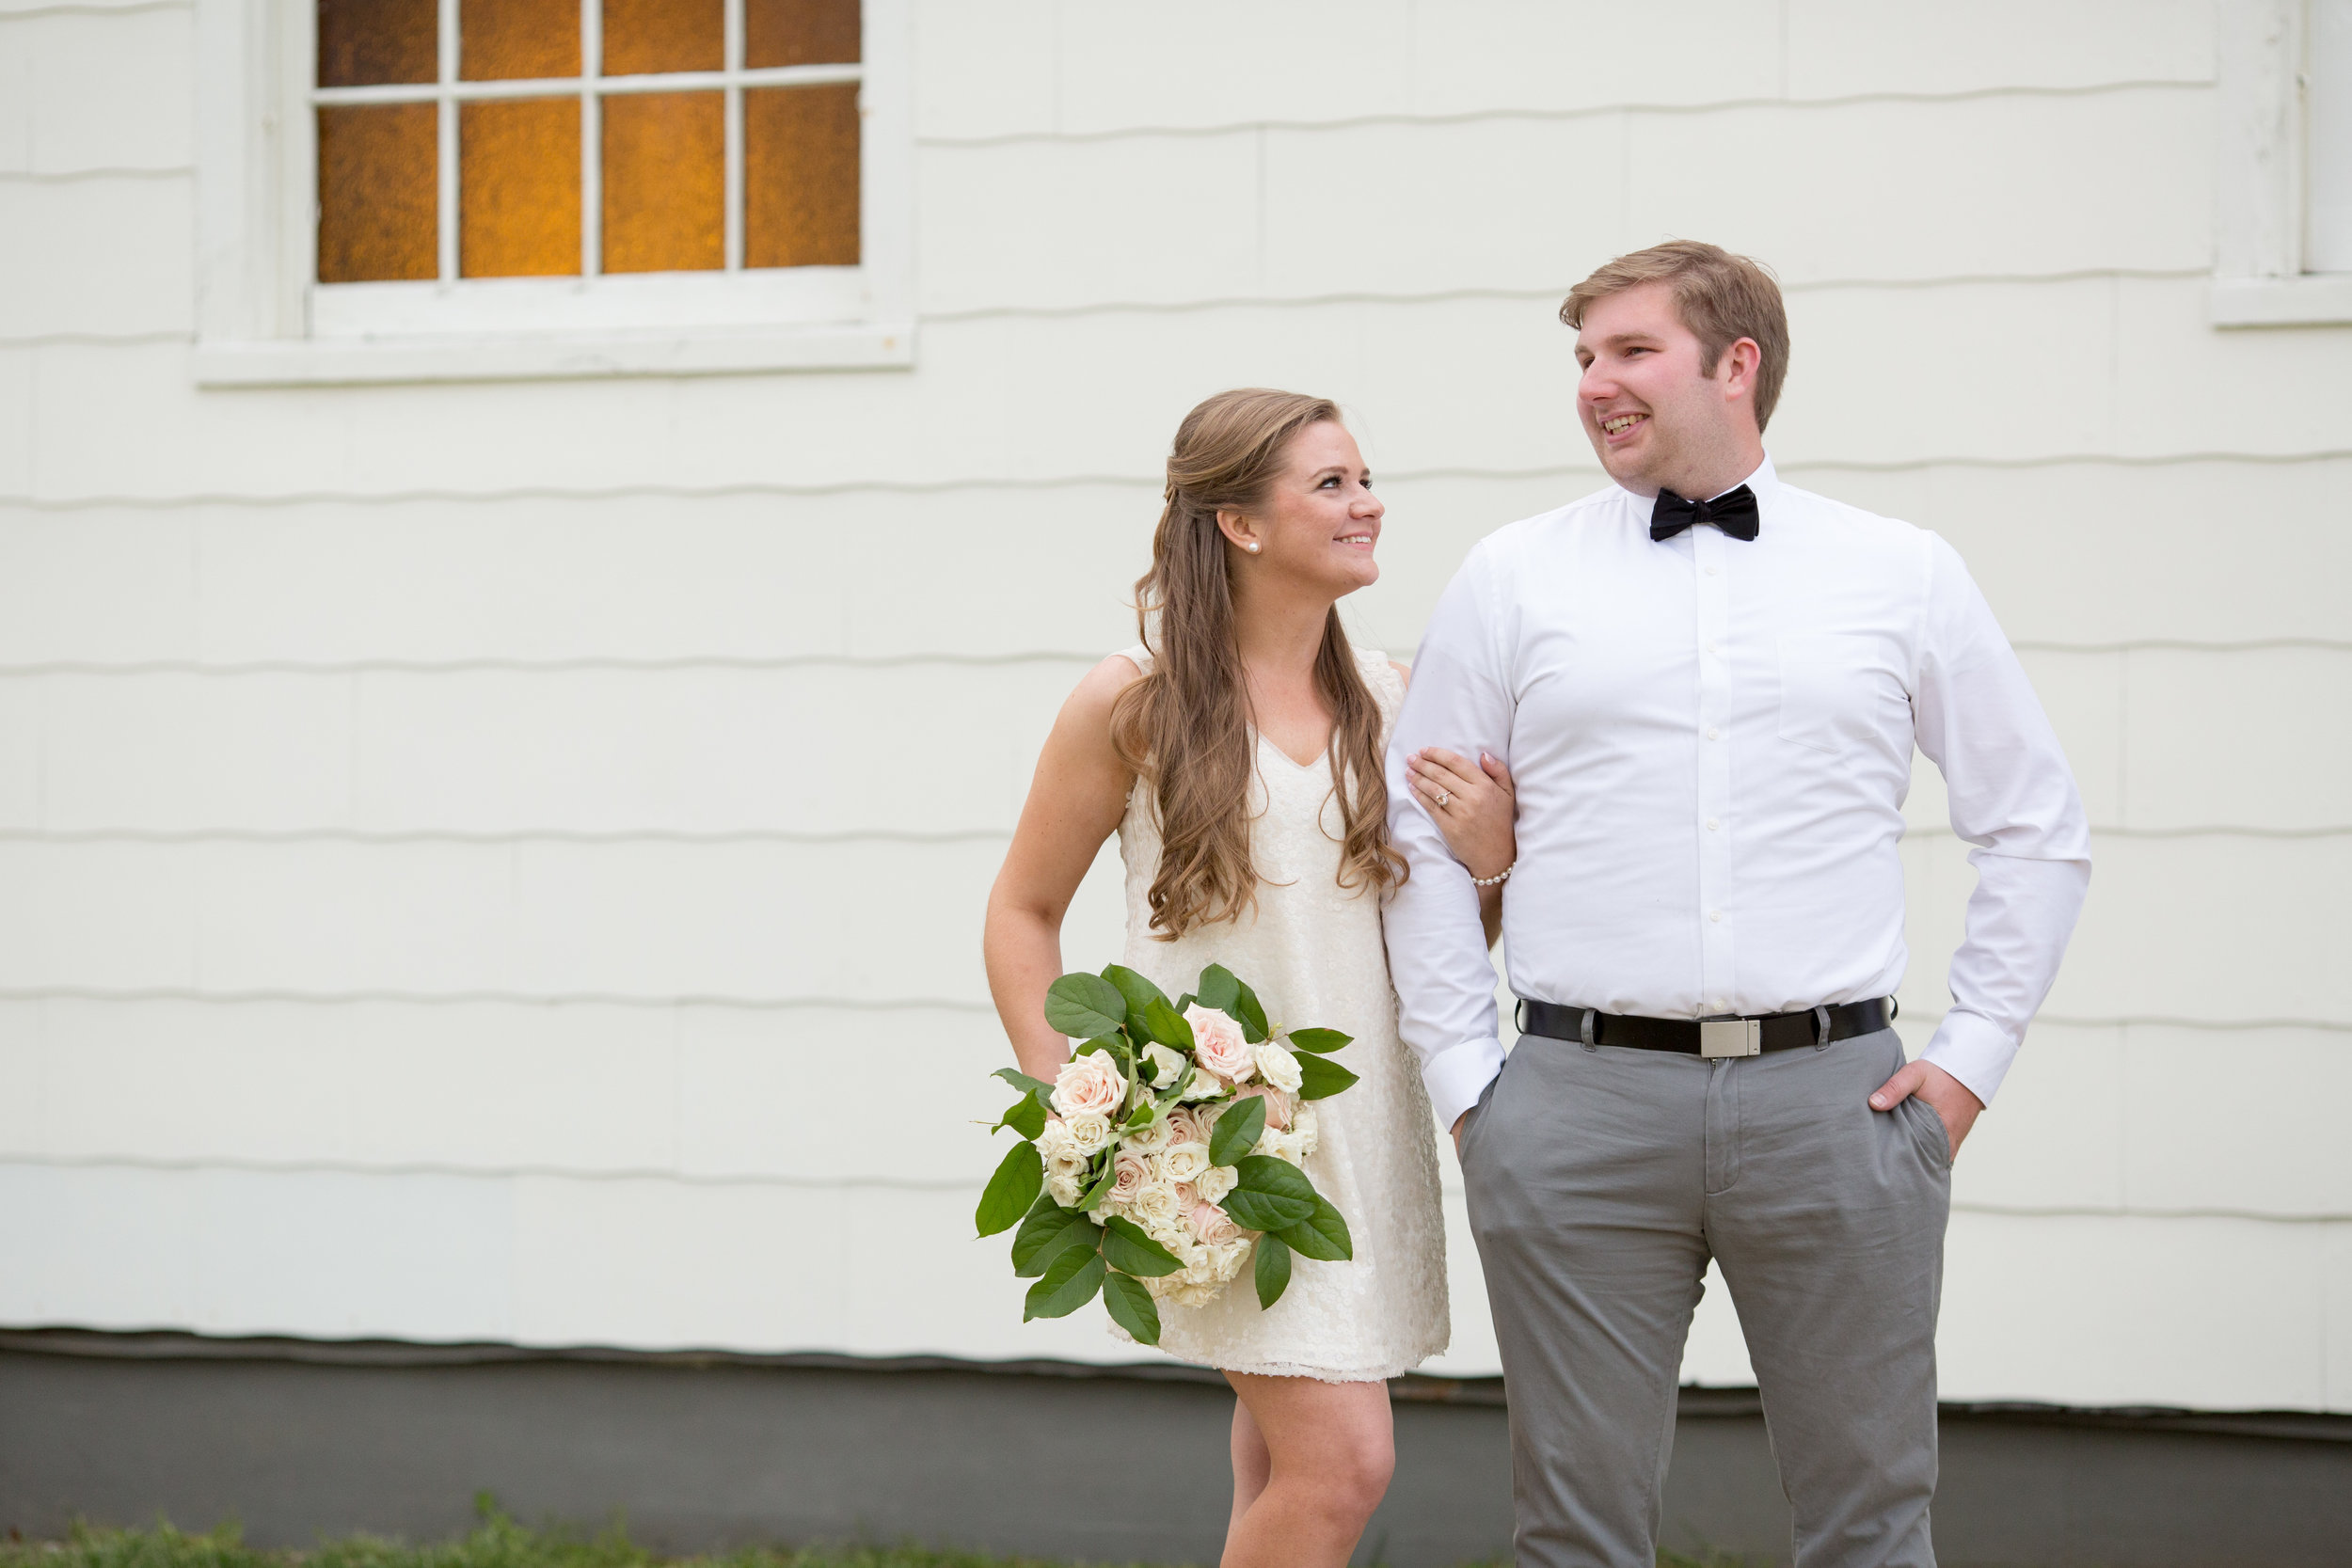 Sandy Hook New Jersey Beach Engagement Session with Magnolia West Events and Jaye Kogut Photography at Chapel with Bouquet and Bow Tie